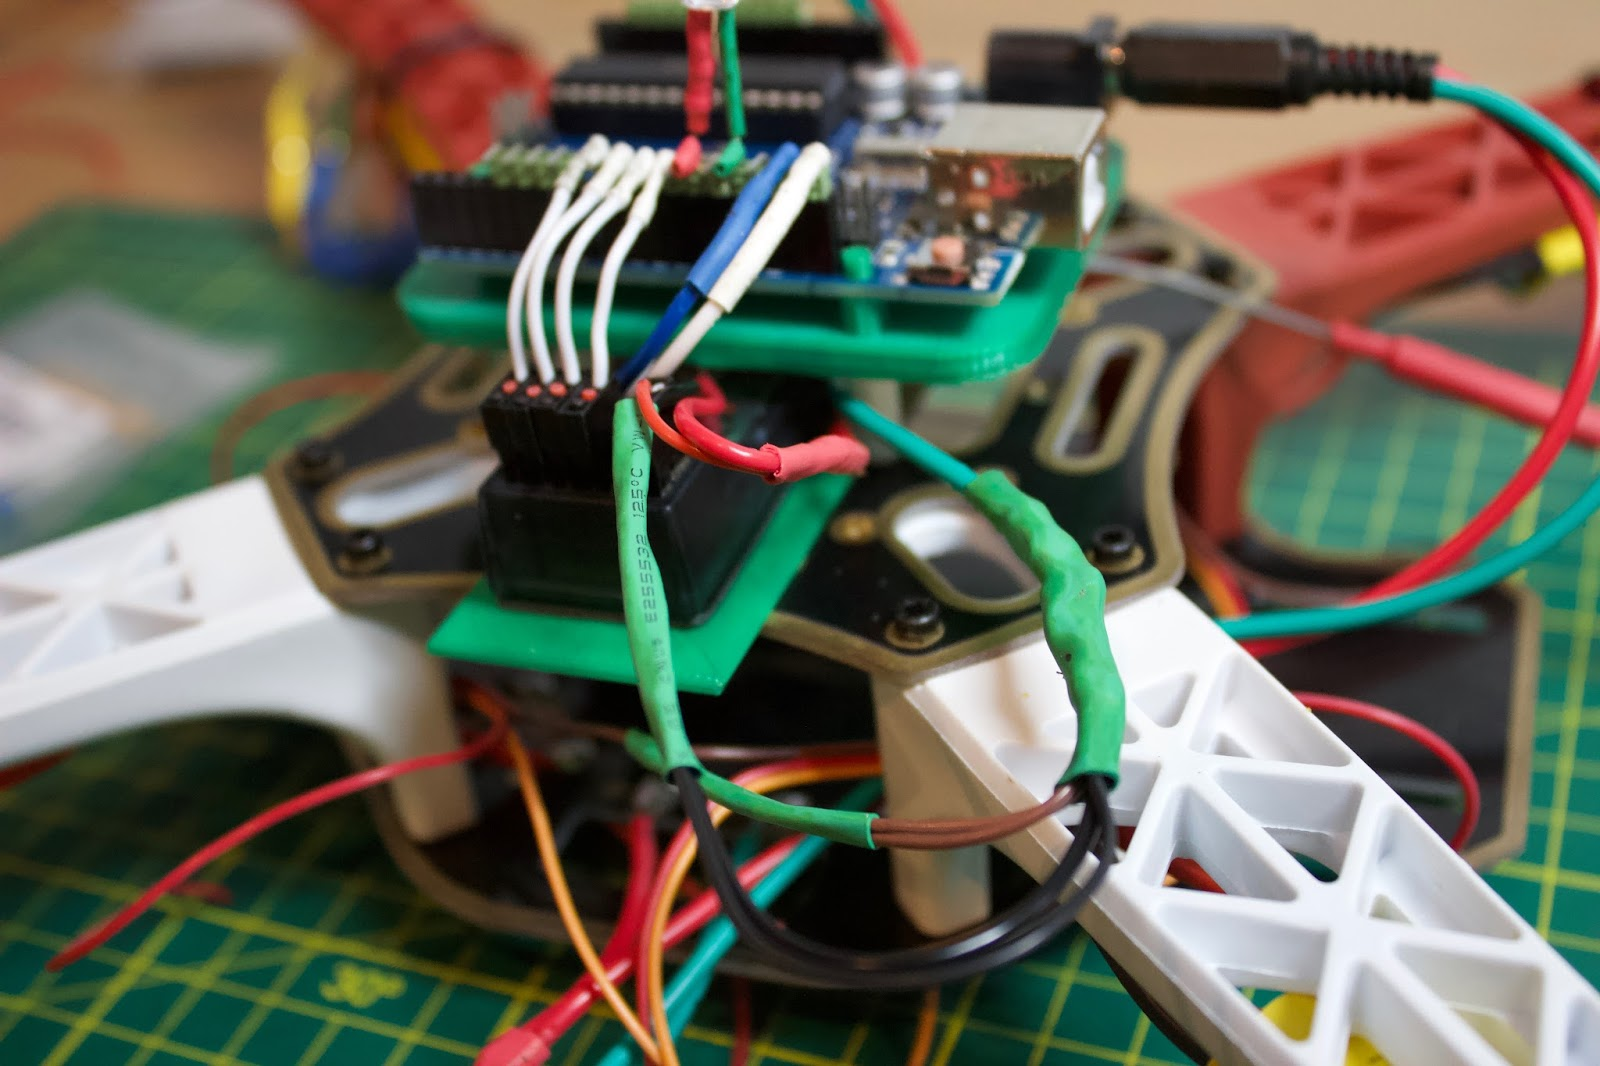 similarly, connect a gnd wiring harness to connect one of the arduino gnd  pins to the receiver, mpu-6050 and esc bec gnd (brown wire - do this if  they